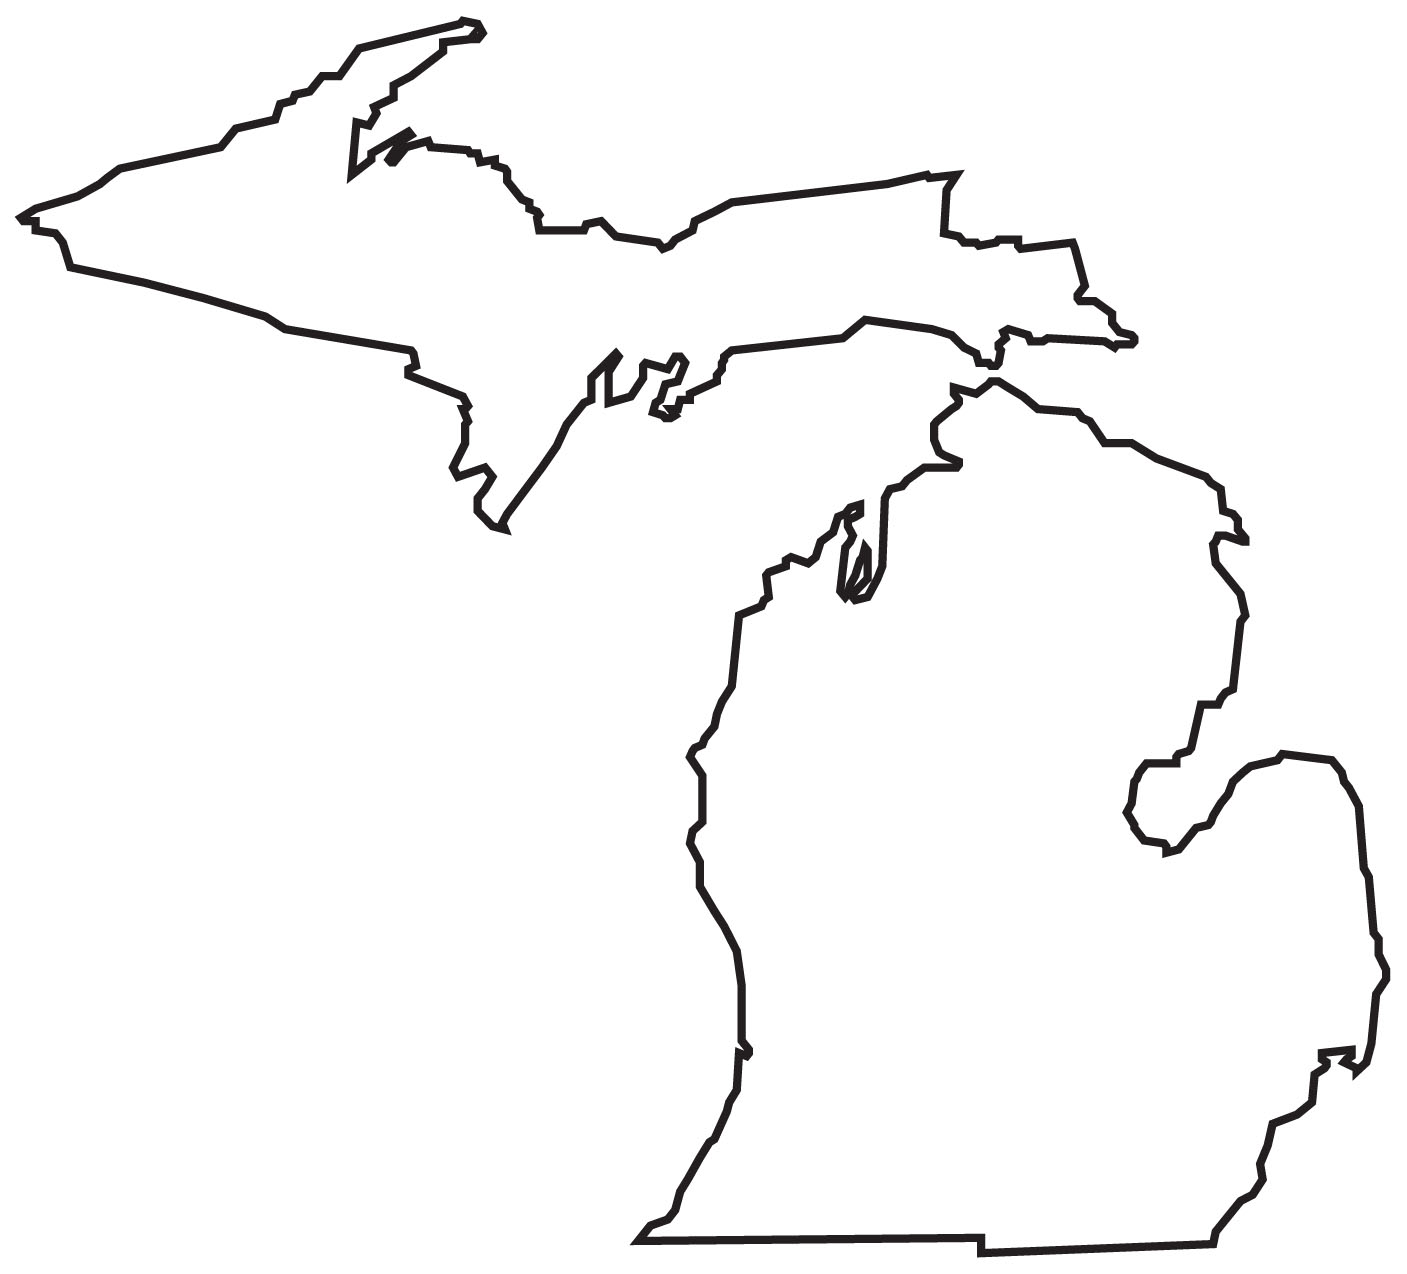 Michigan Printable Map - ClipArt Best - ClipArt Best